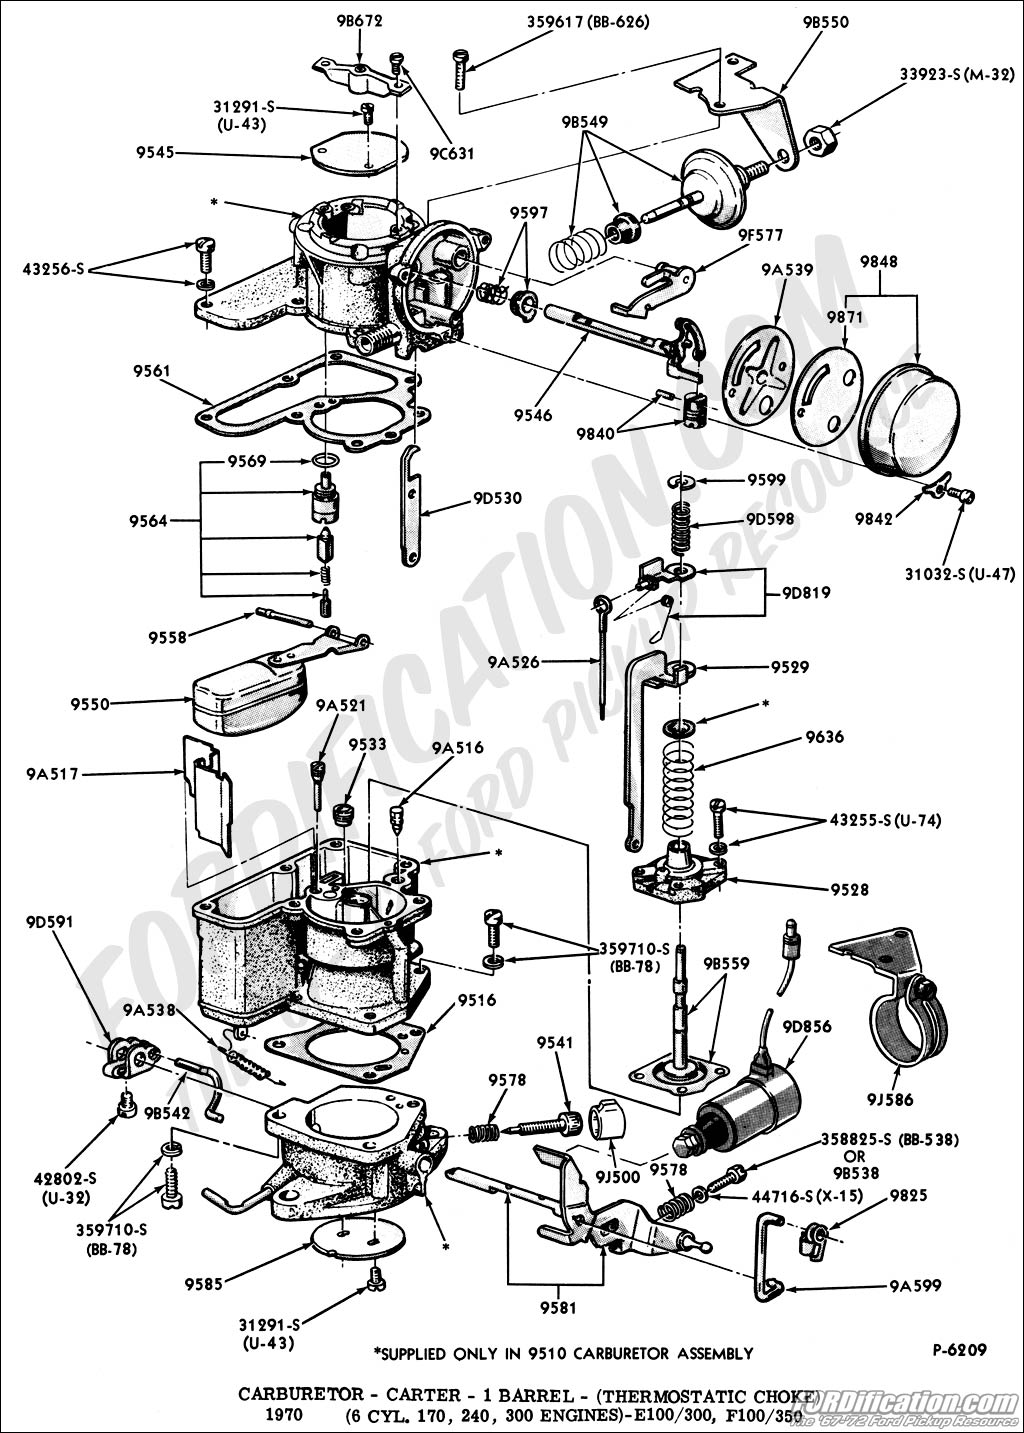 1964 Chevy Inline 6 Engine Diagram 2.4 Liter Engine